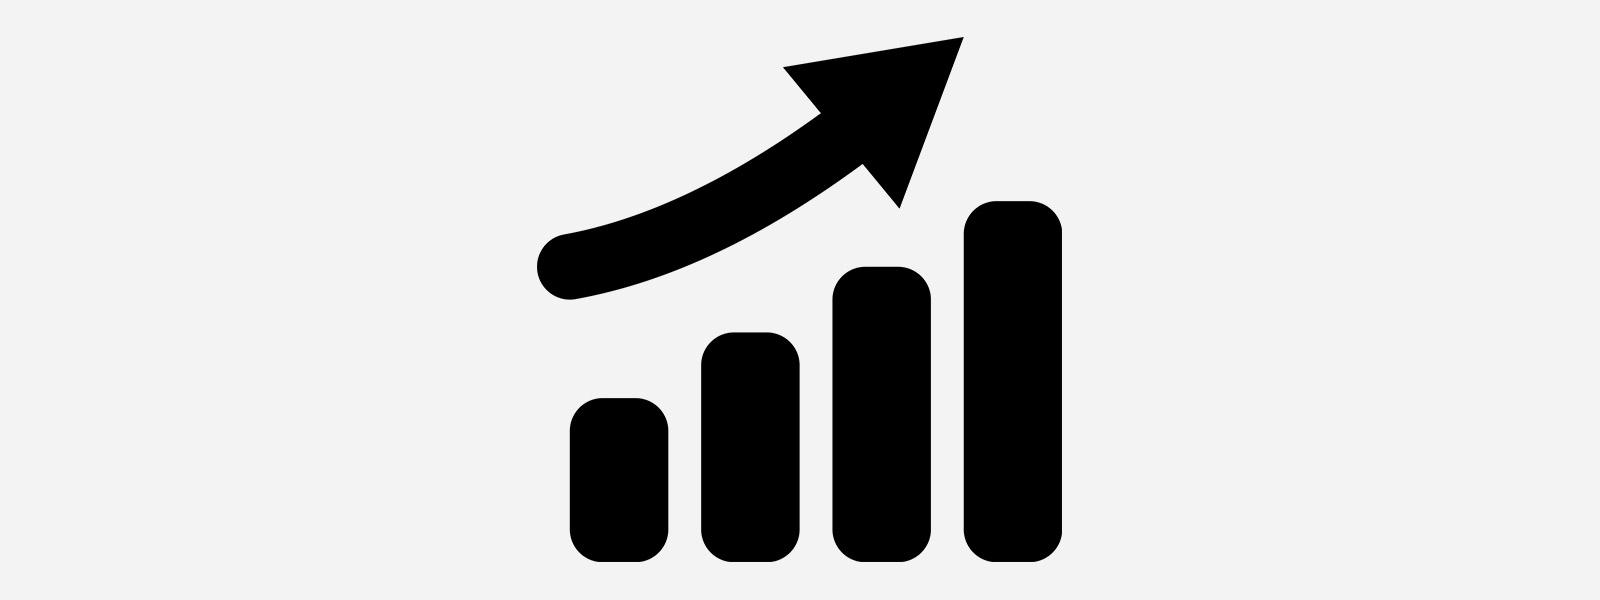 Illustration of a bar graph showing an increasing trend